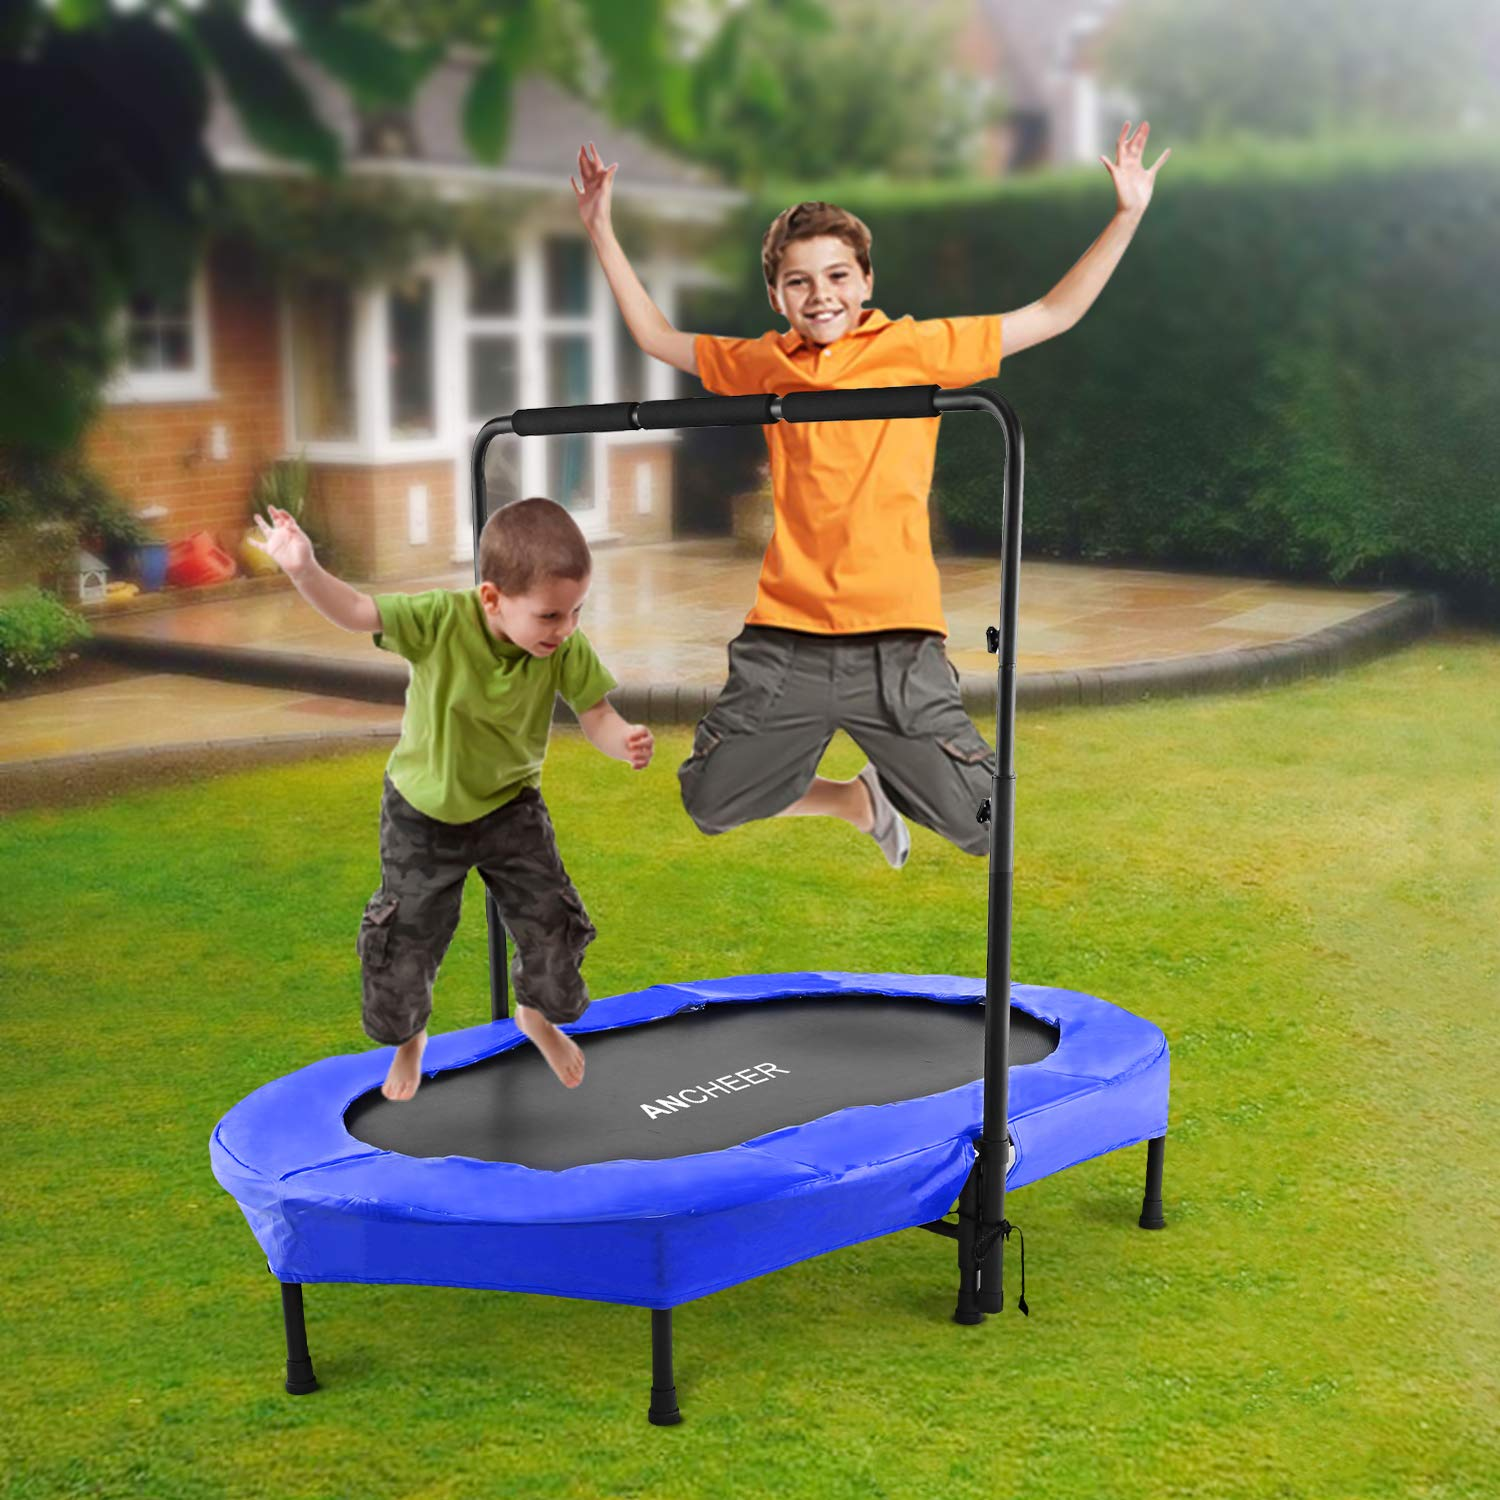 ANCHEER Rebounder Trampoline, Foldable Exercise Trampoline with Adjustable Handrail for Adults Kids, Parent-Child Mini Trampoline for Two Kids ( 37.8'' - 50'')